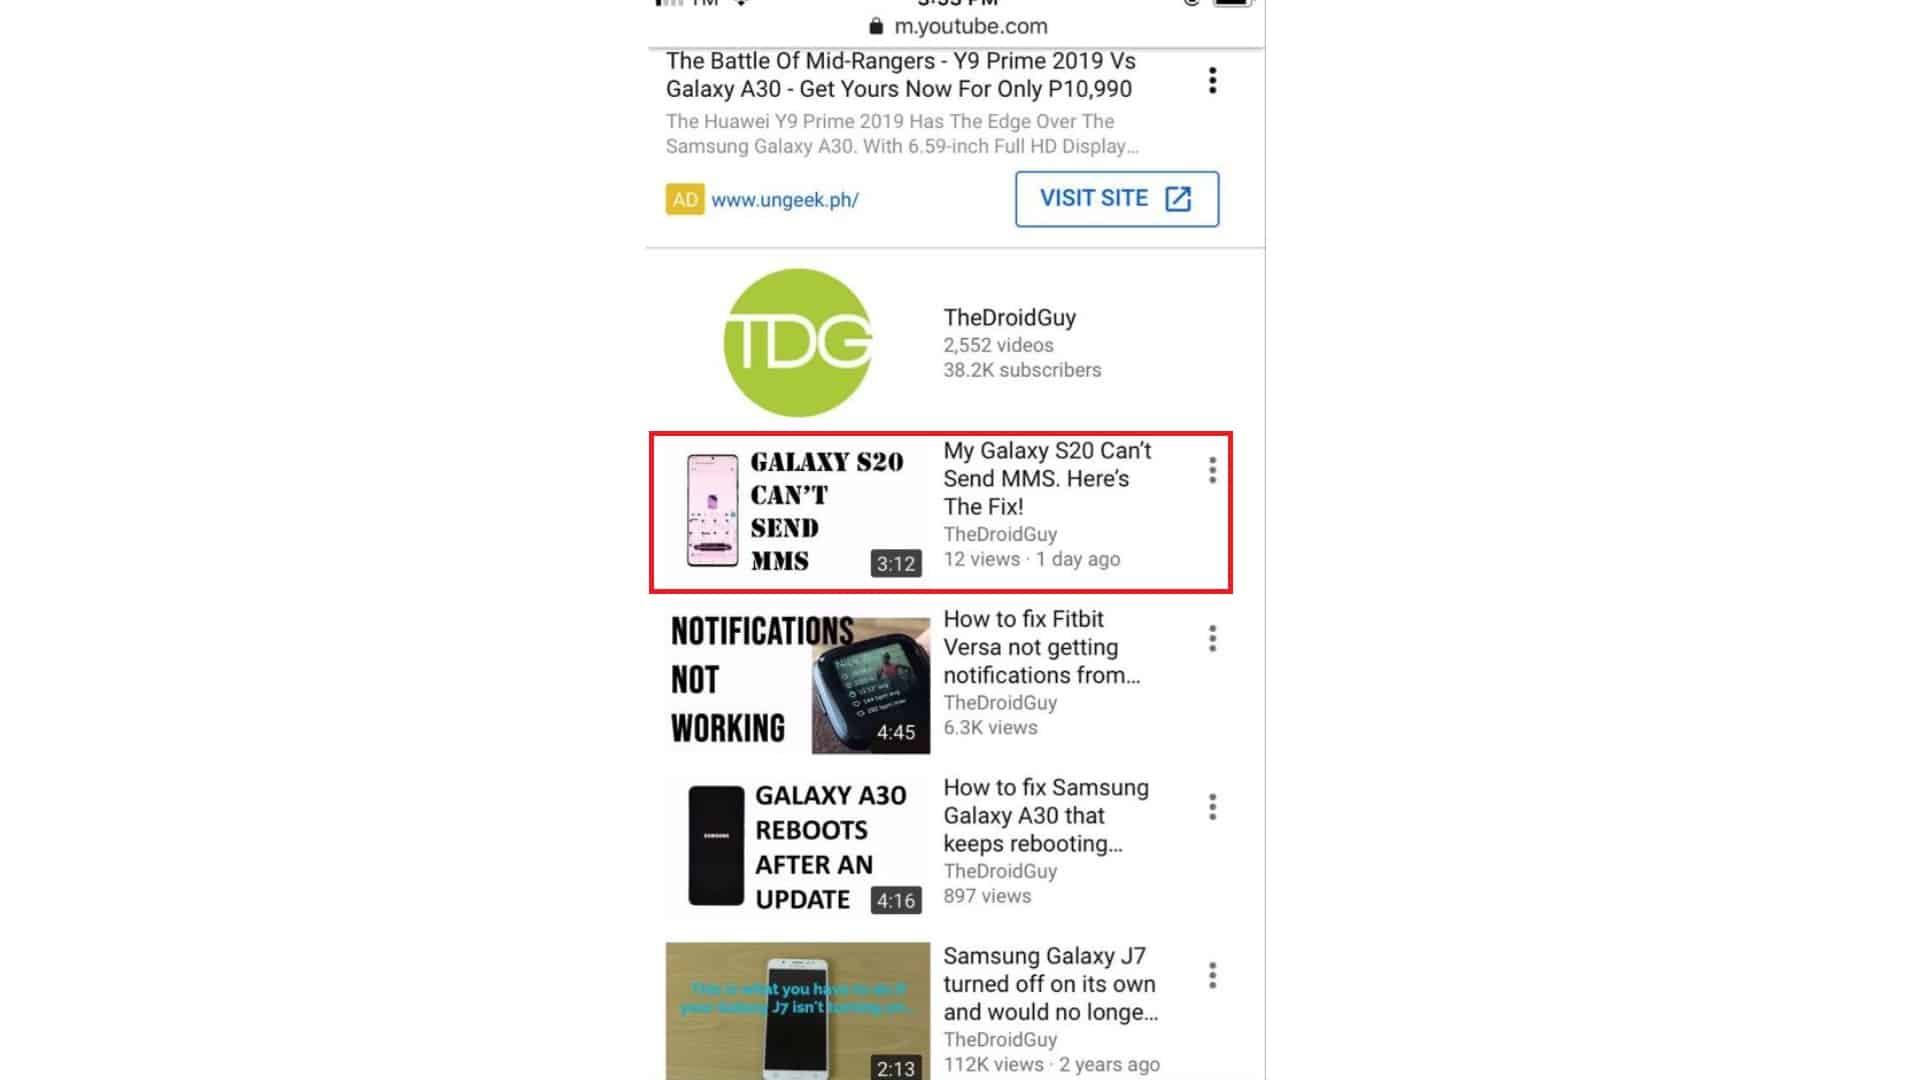 play-youtube-videos-in-the-background-on-ios-guide